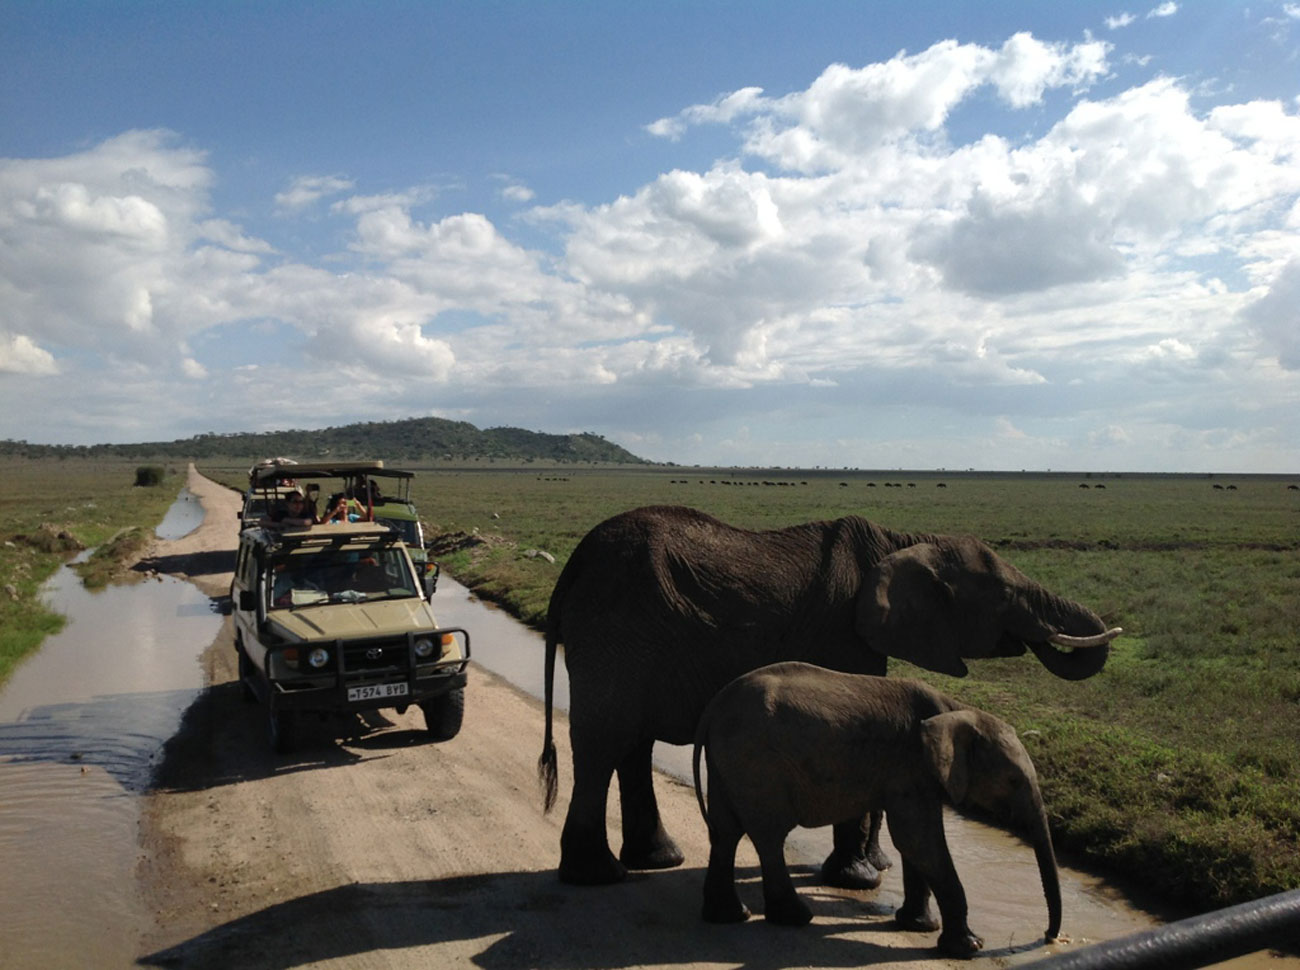 Elephants crossing the road during a Penwell Safari's Tanzania safari